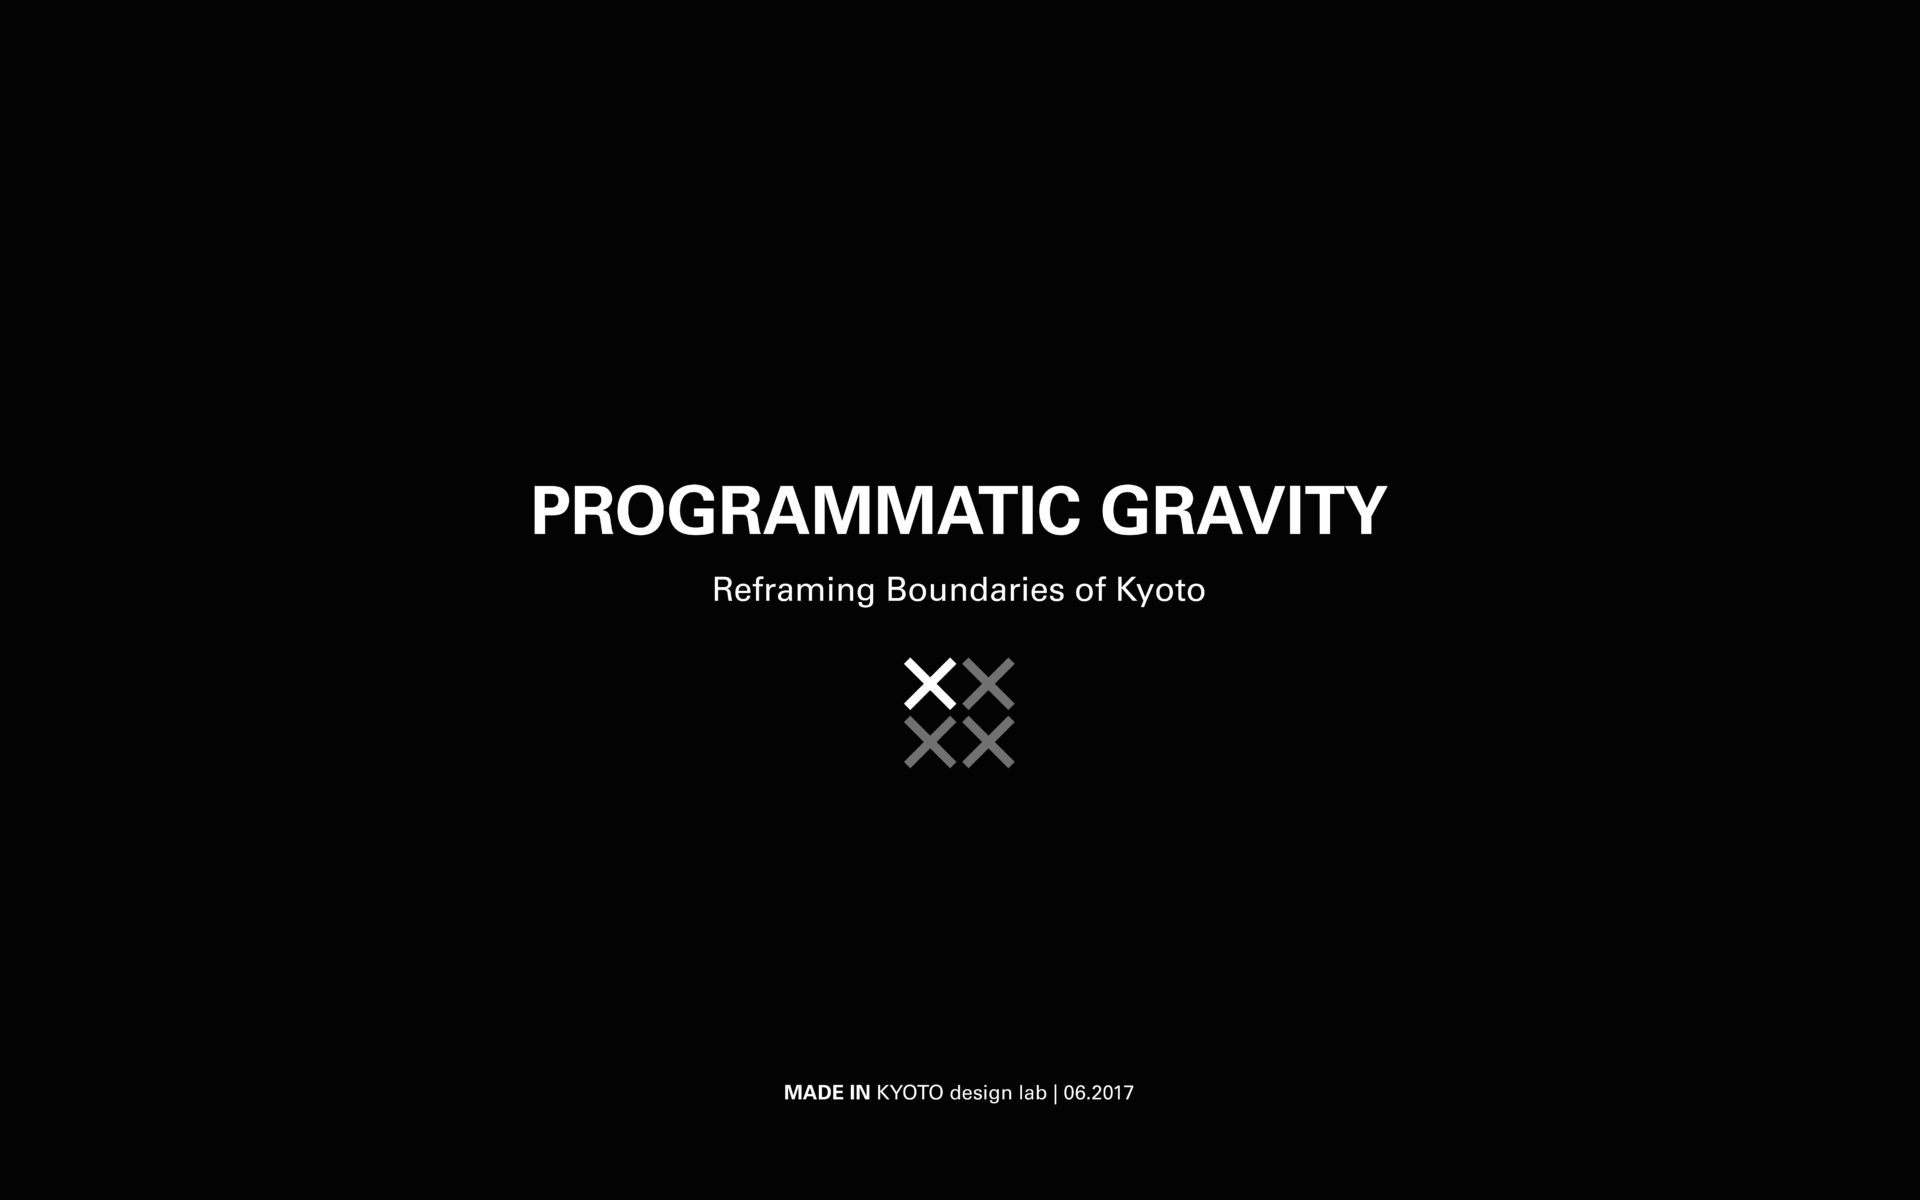 PROGRAMMATIC GRAVITY. Made in, 2017